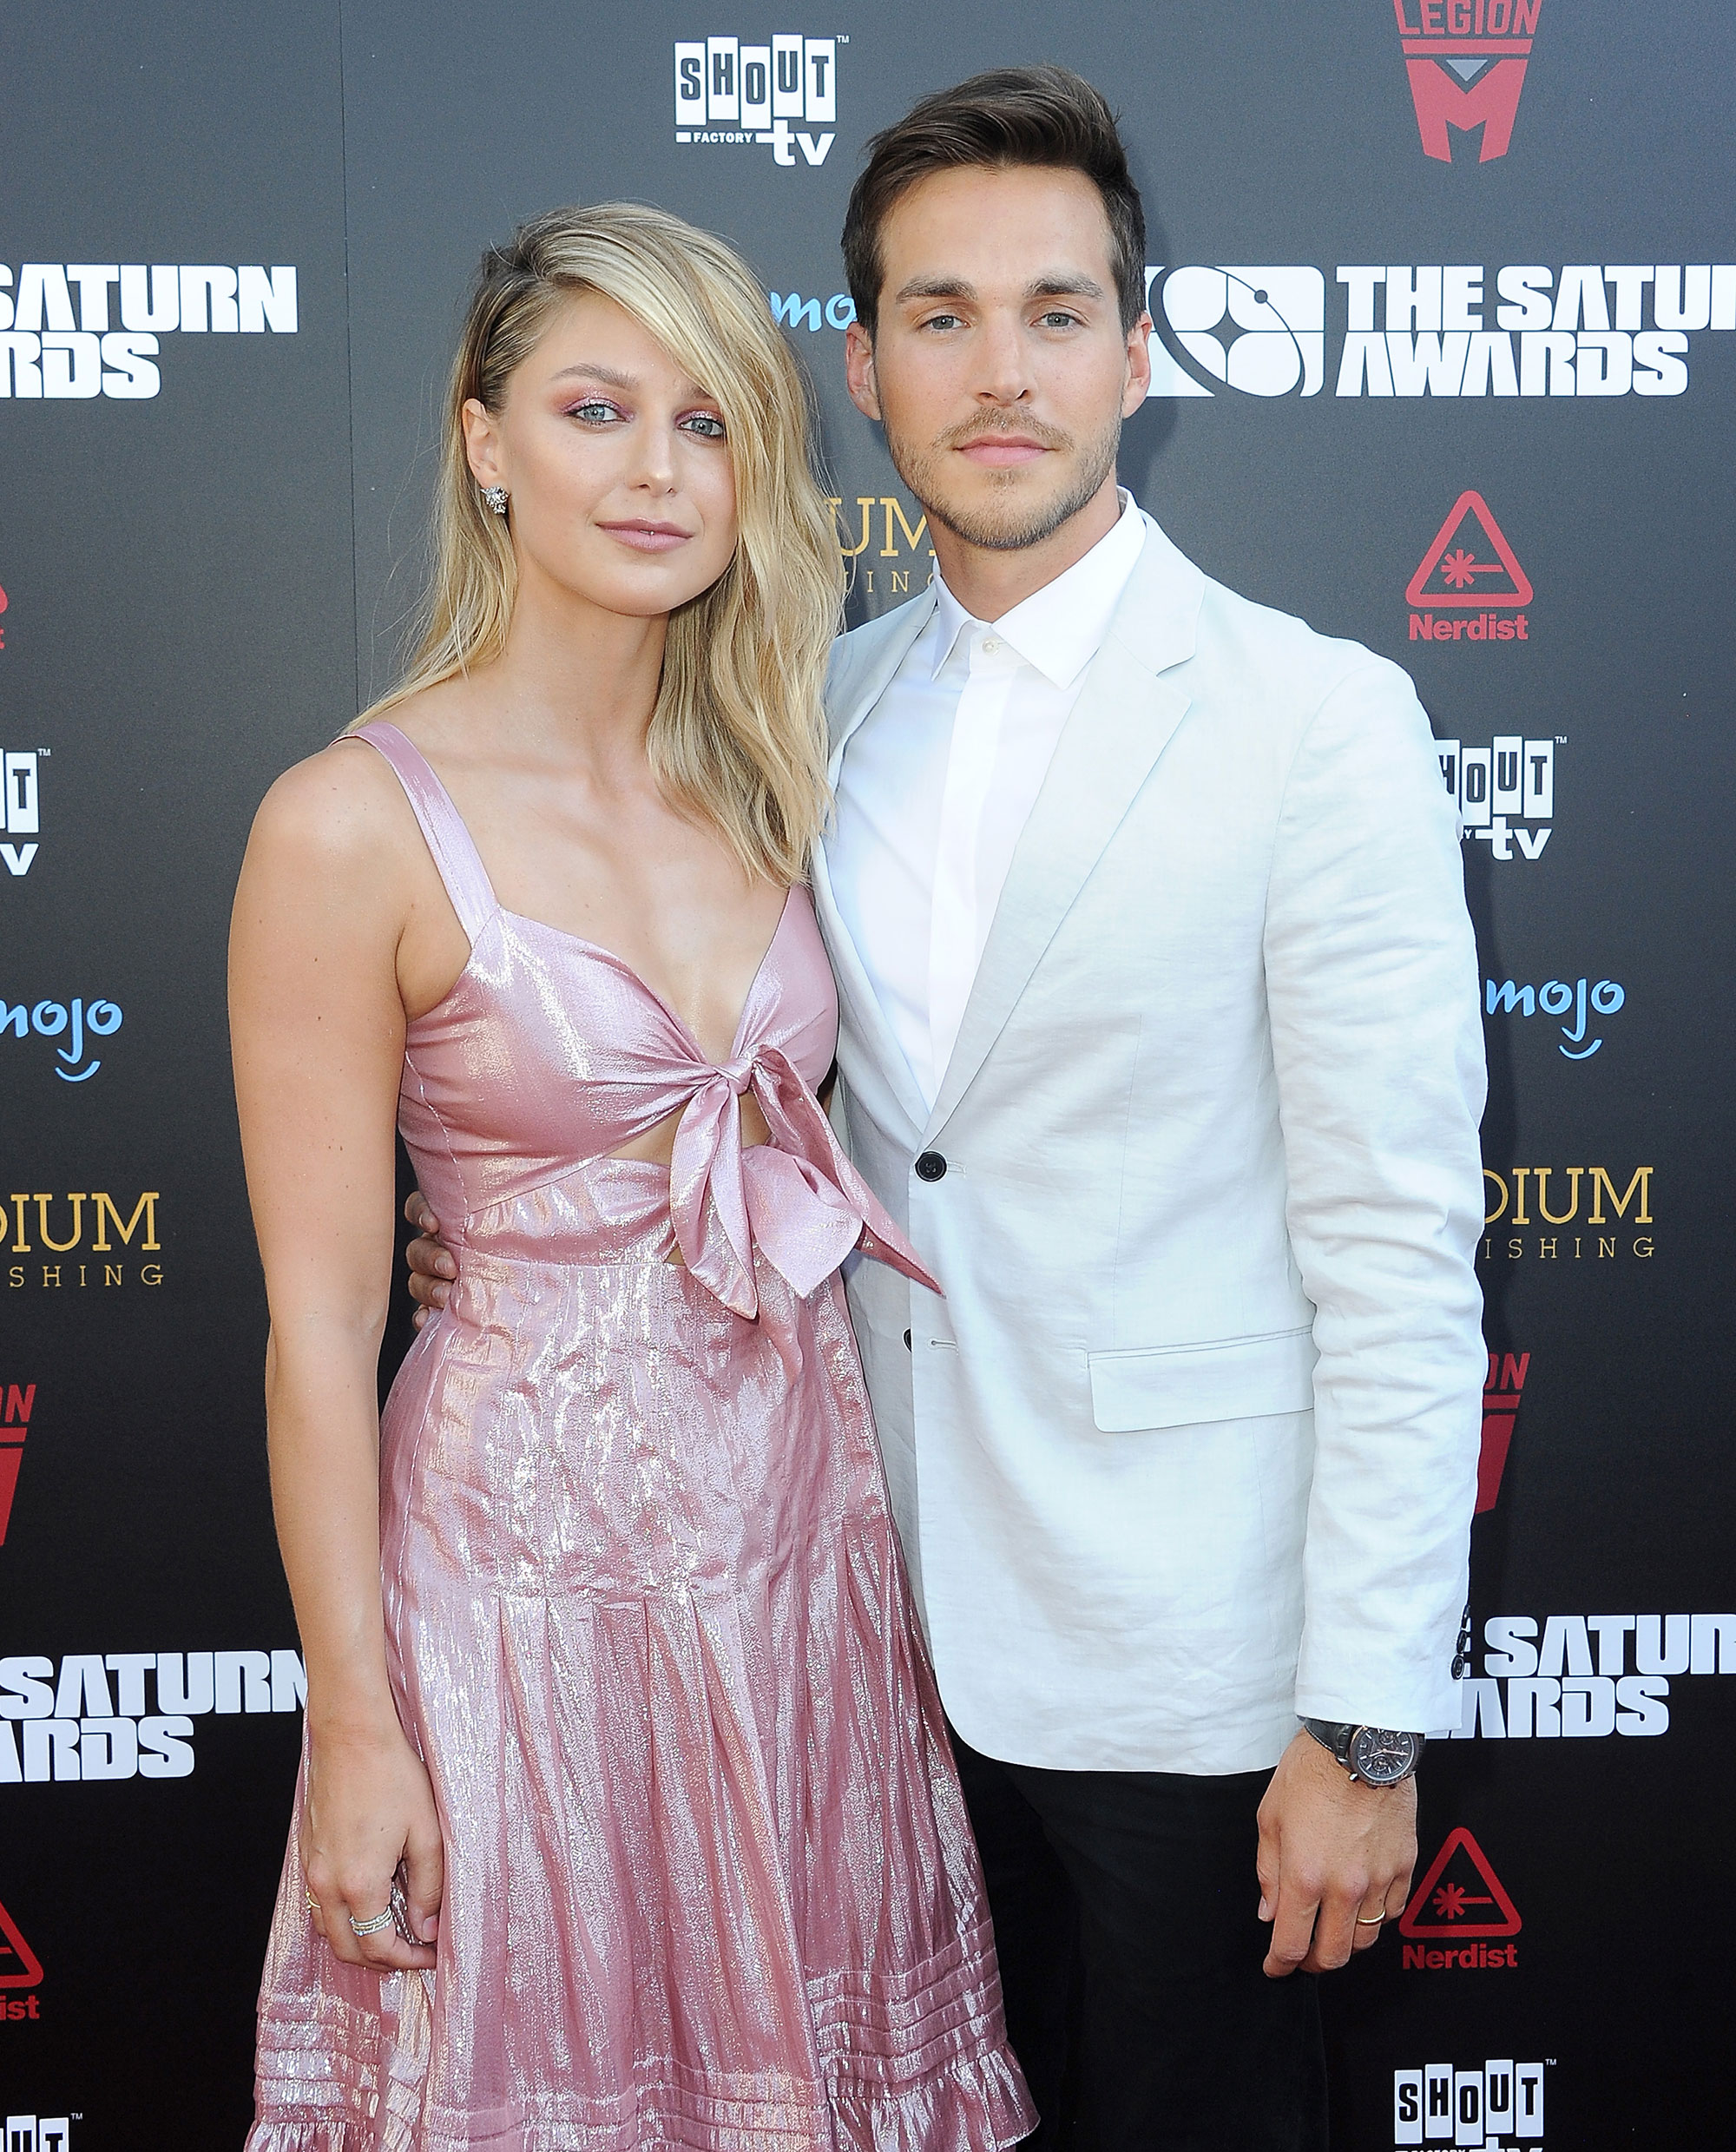 Chris Wood Supports Wife Melissa Benoist After She Reveals She Is A Domestic Violence Survivor Nestia News